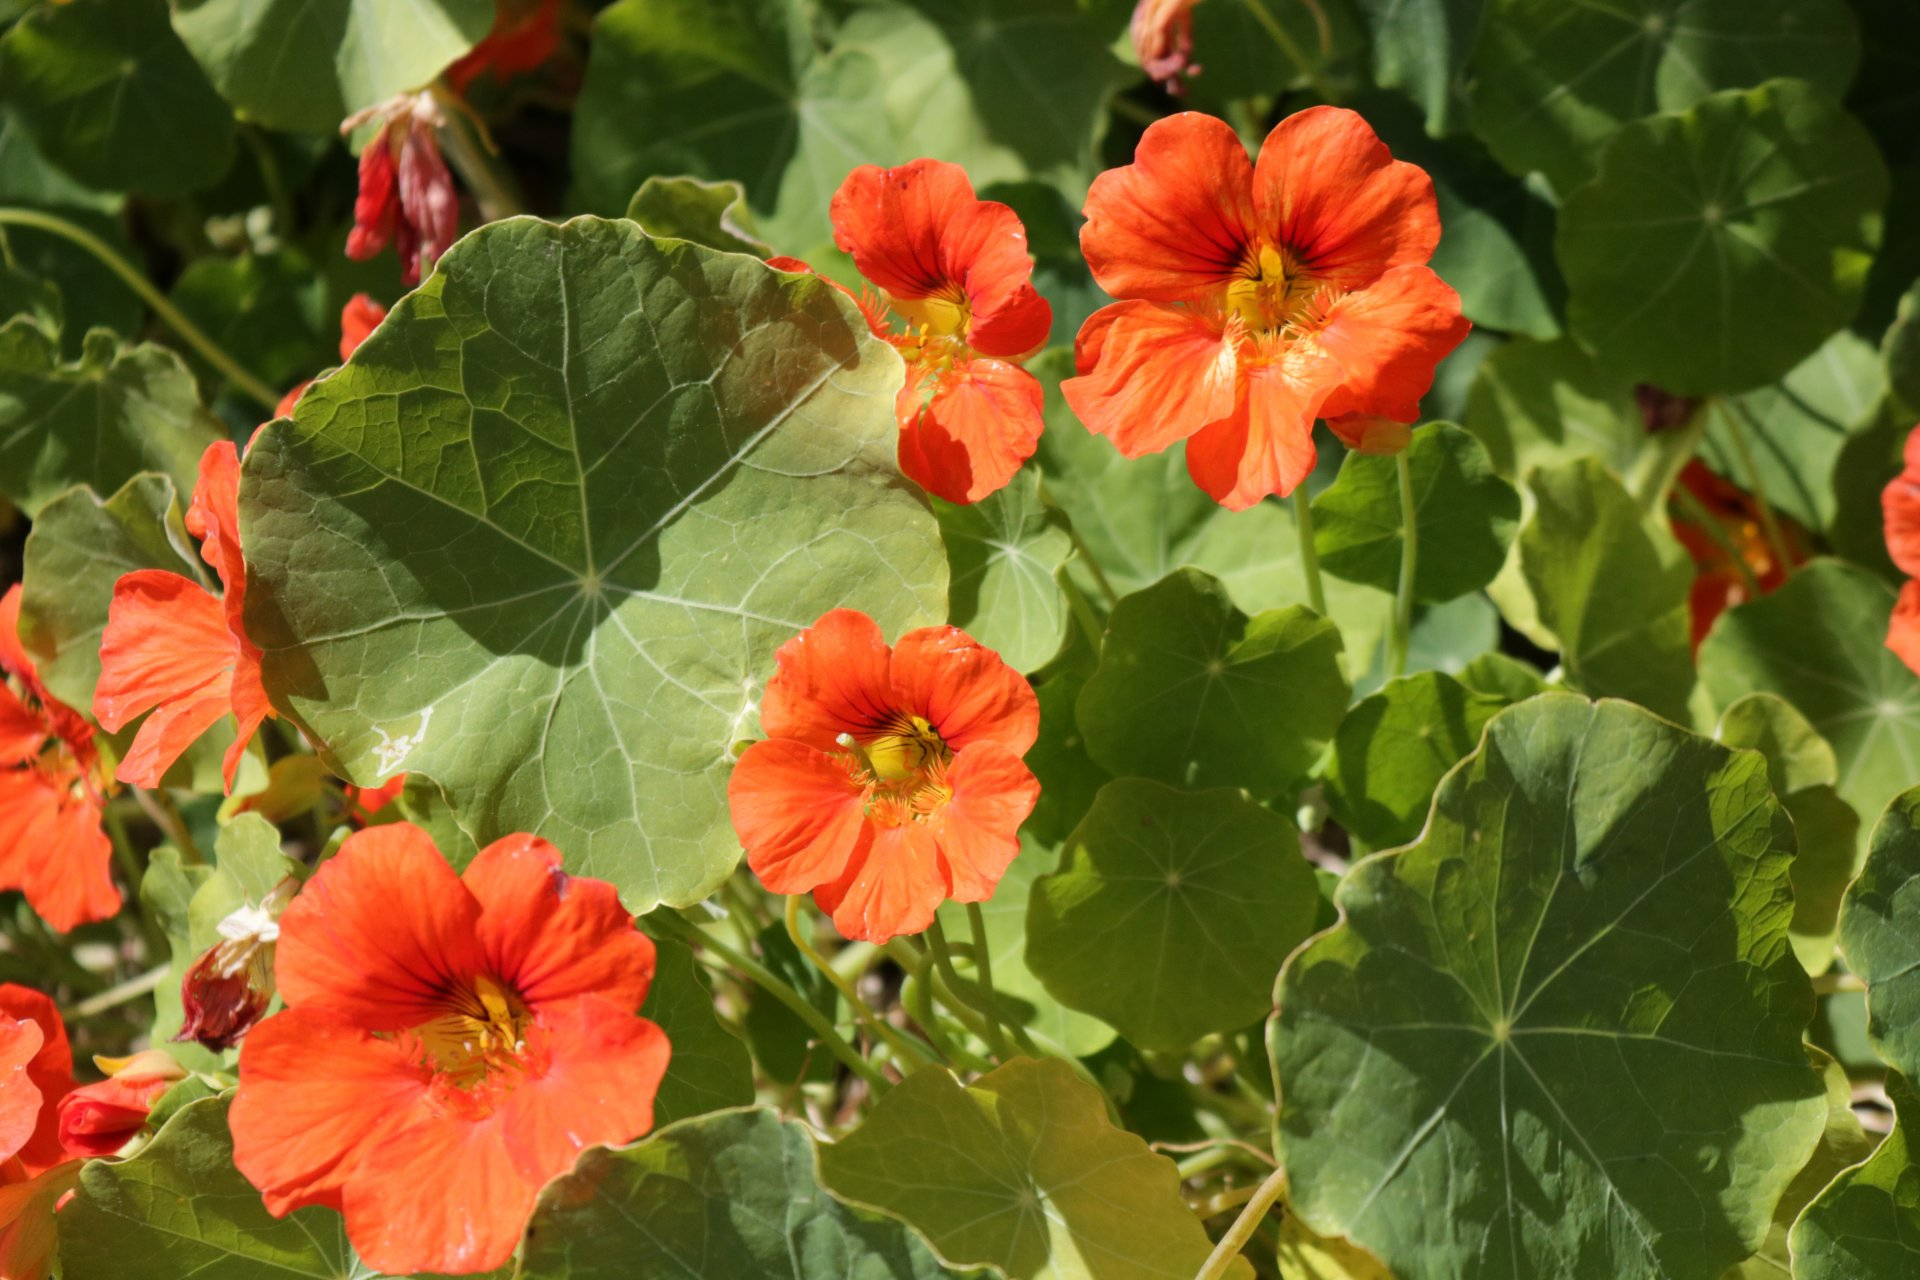 How to maintain and care for Nasturtium flowers